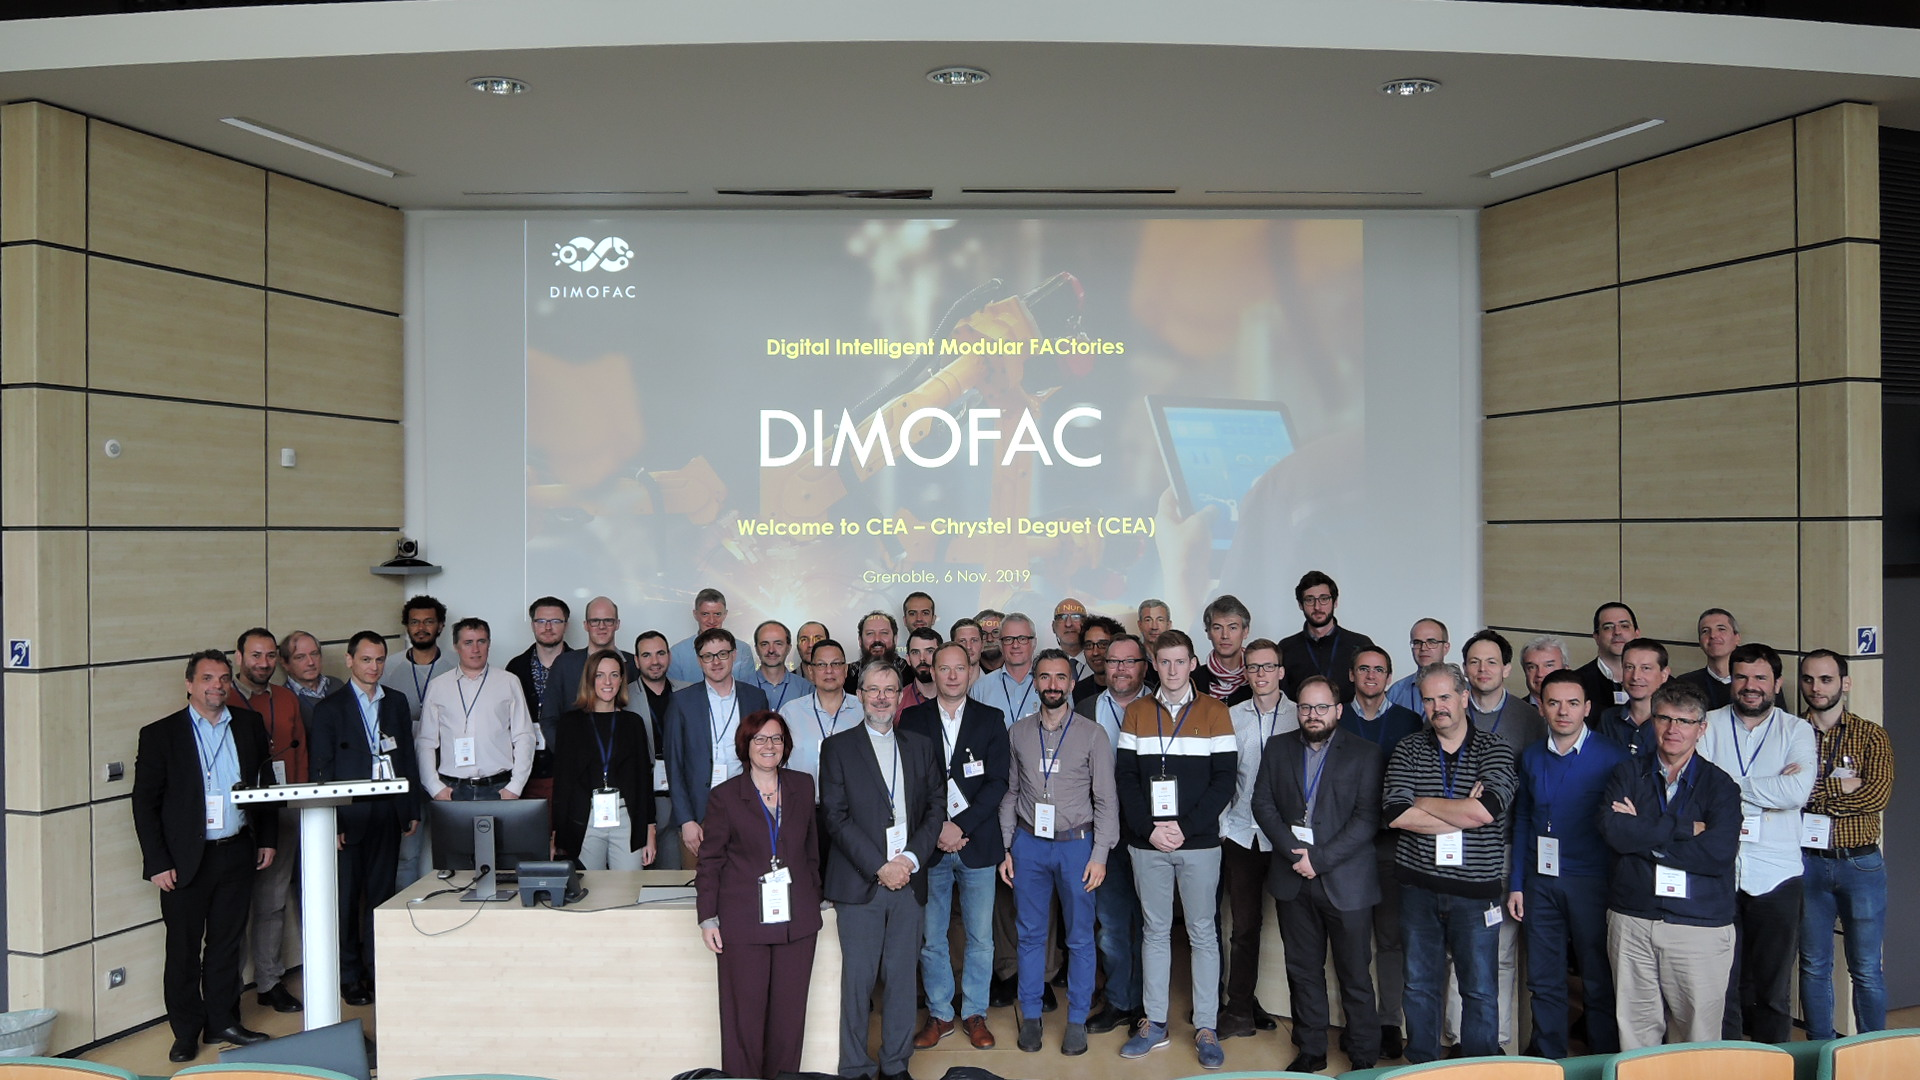 The DIMOFAC initiative was officially launched!